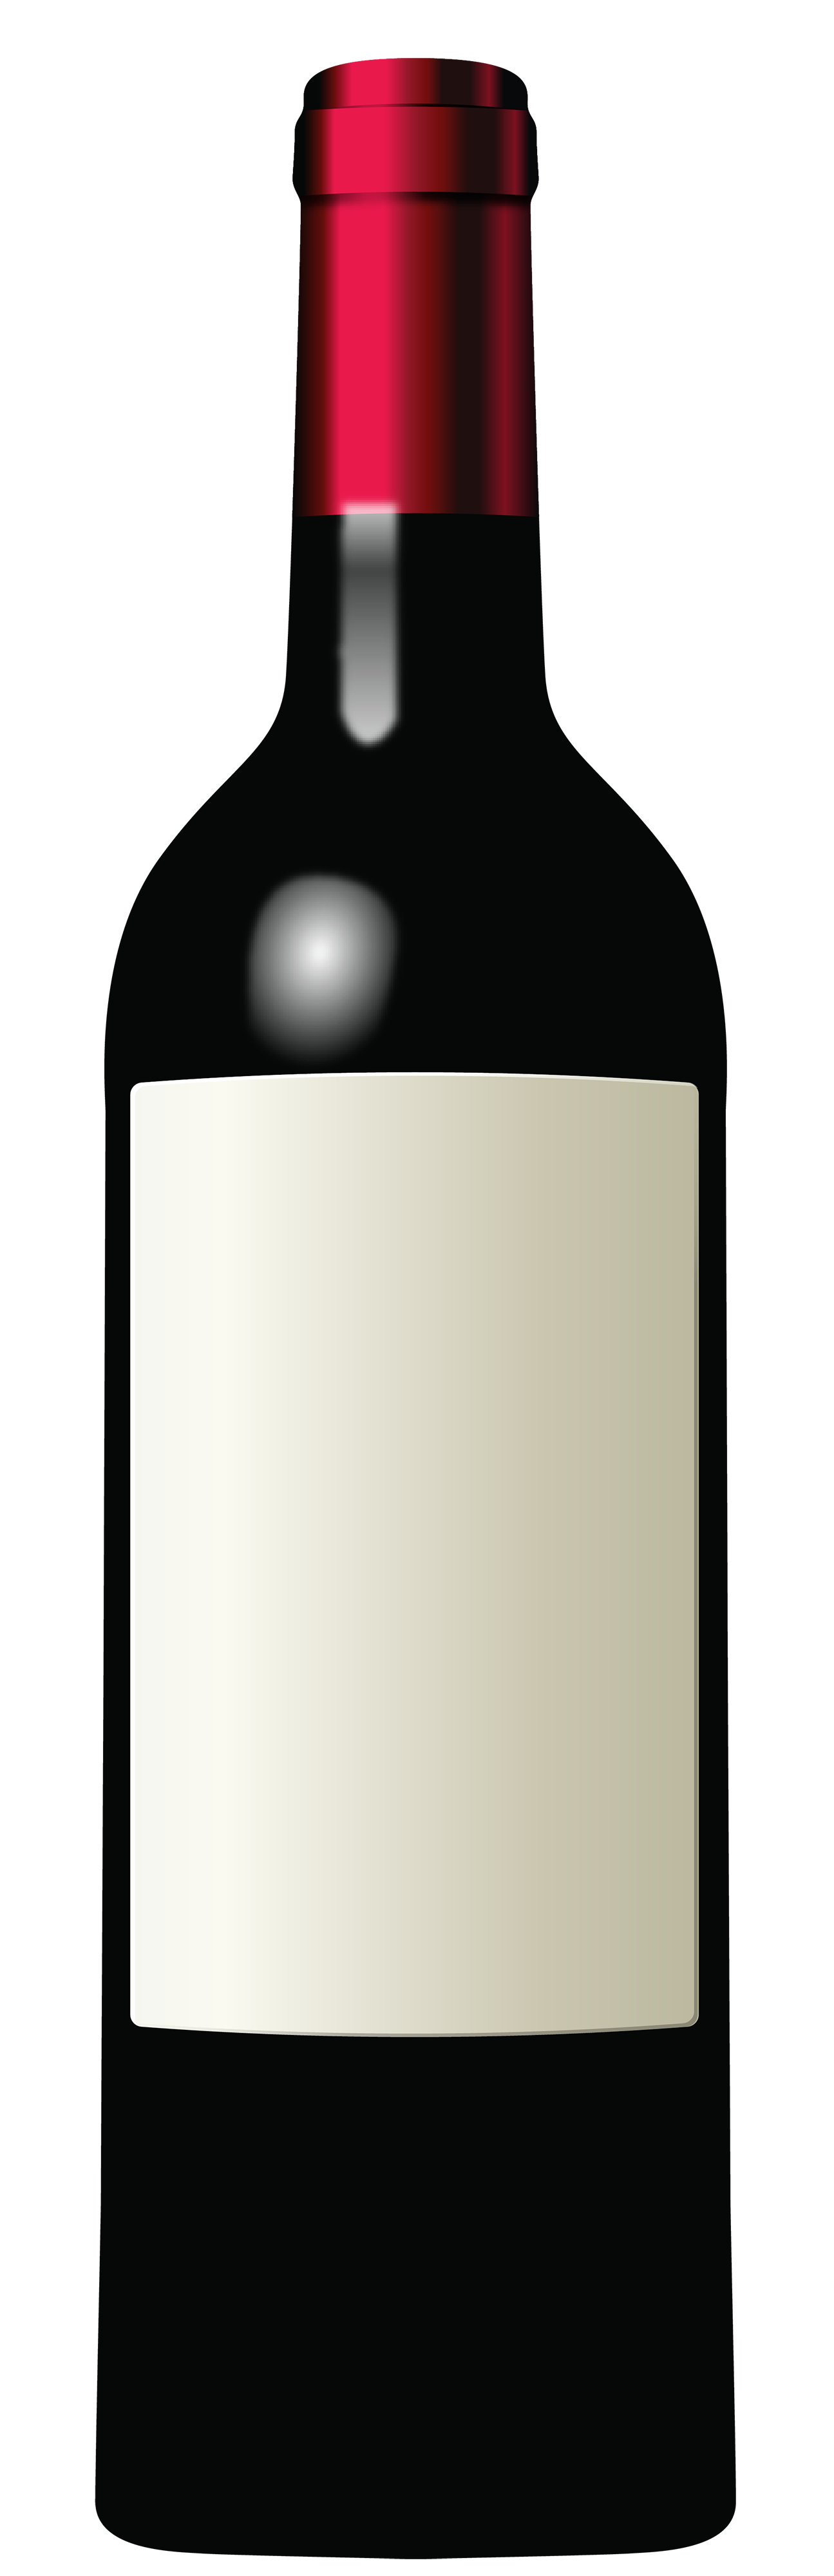 Of clipart gallery for. Wine bottle png